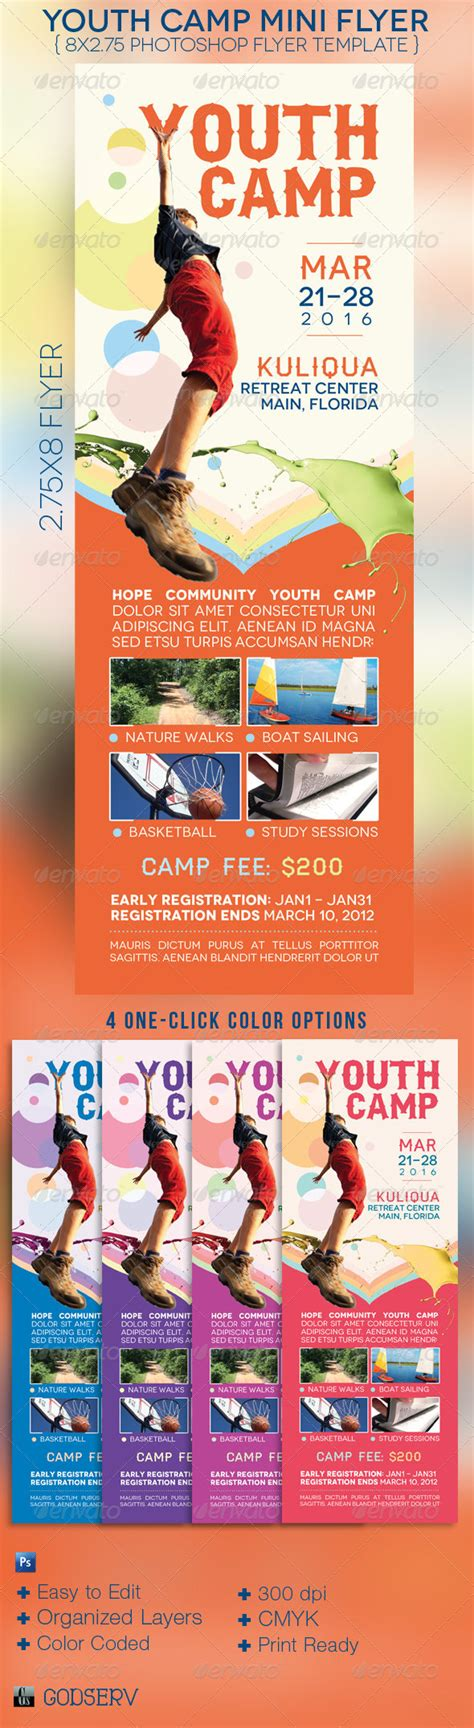 Youth C Mini Flyer Template By Godserv Graphicriver Youth Flyer Template Free